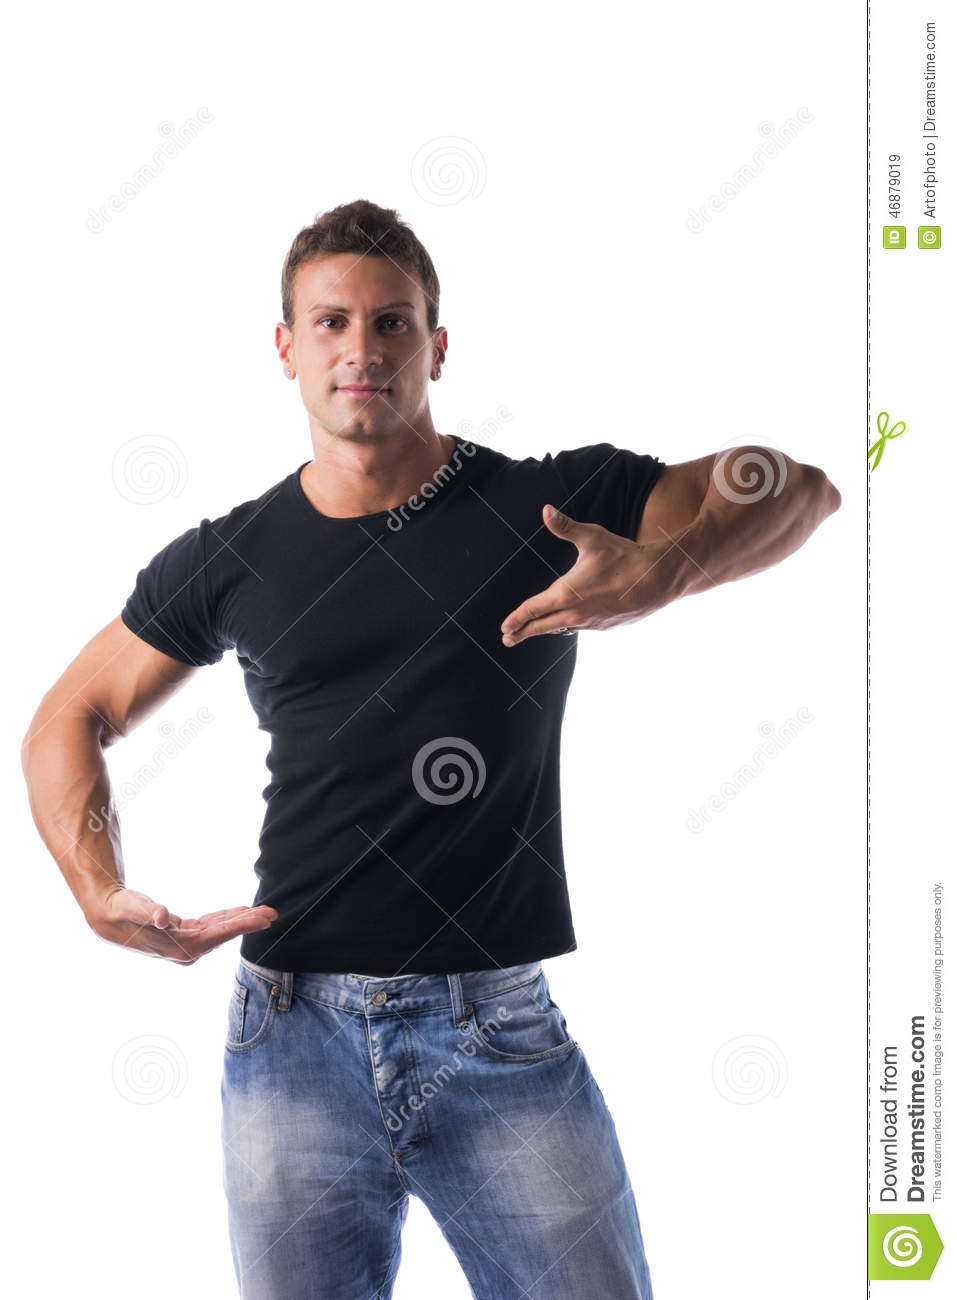 Black t shirt and jeans - Muscular